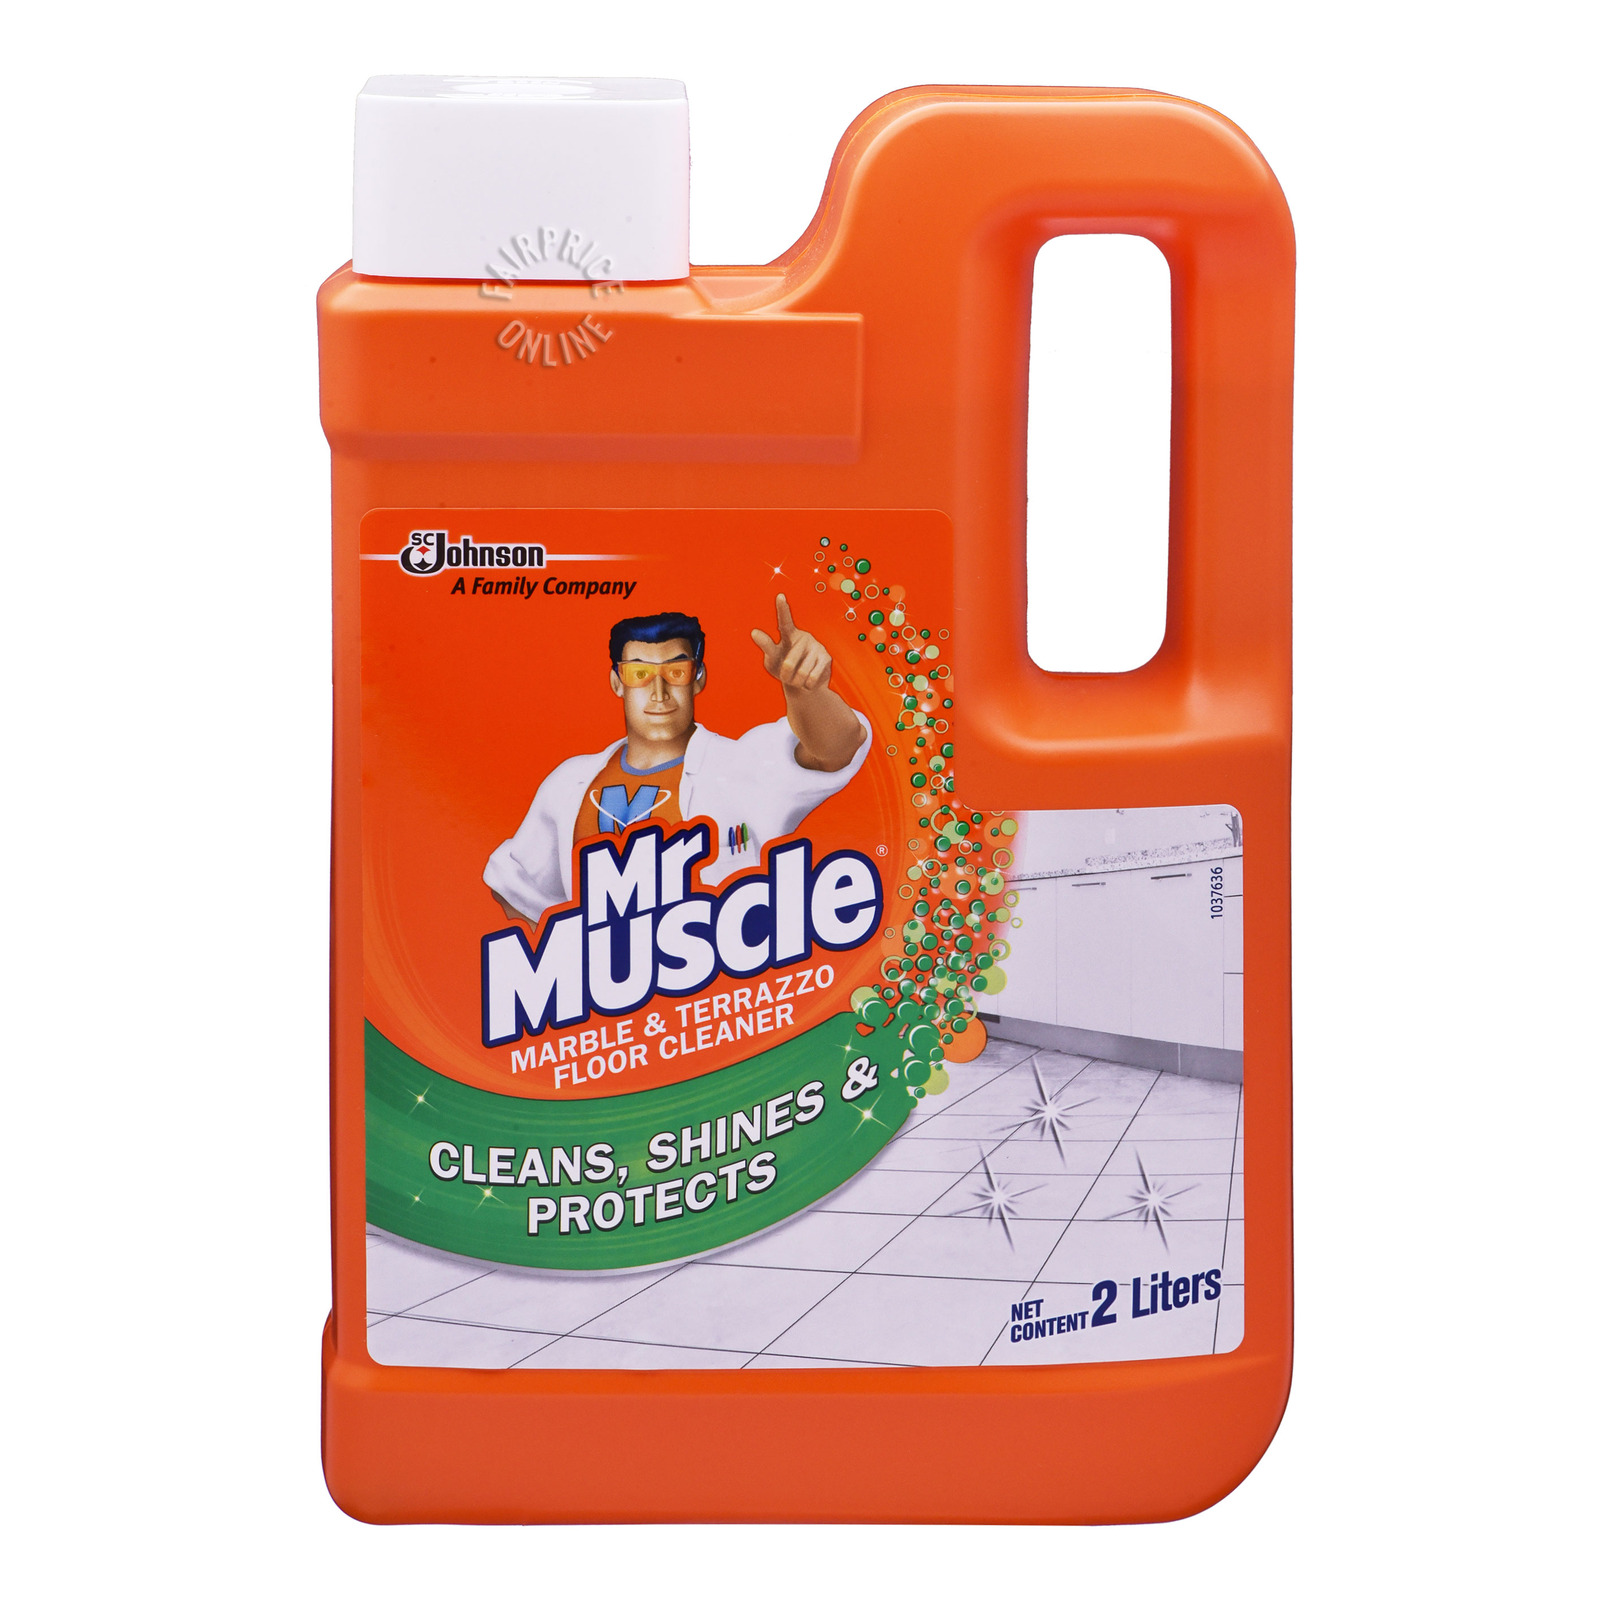 Mr Muscle 3 in 1 Floor Cleaner - Marble & Terrazzo